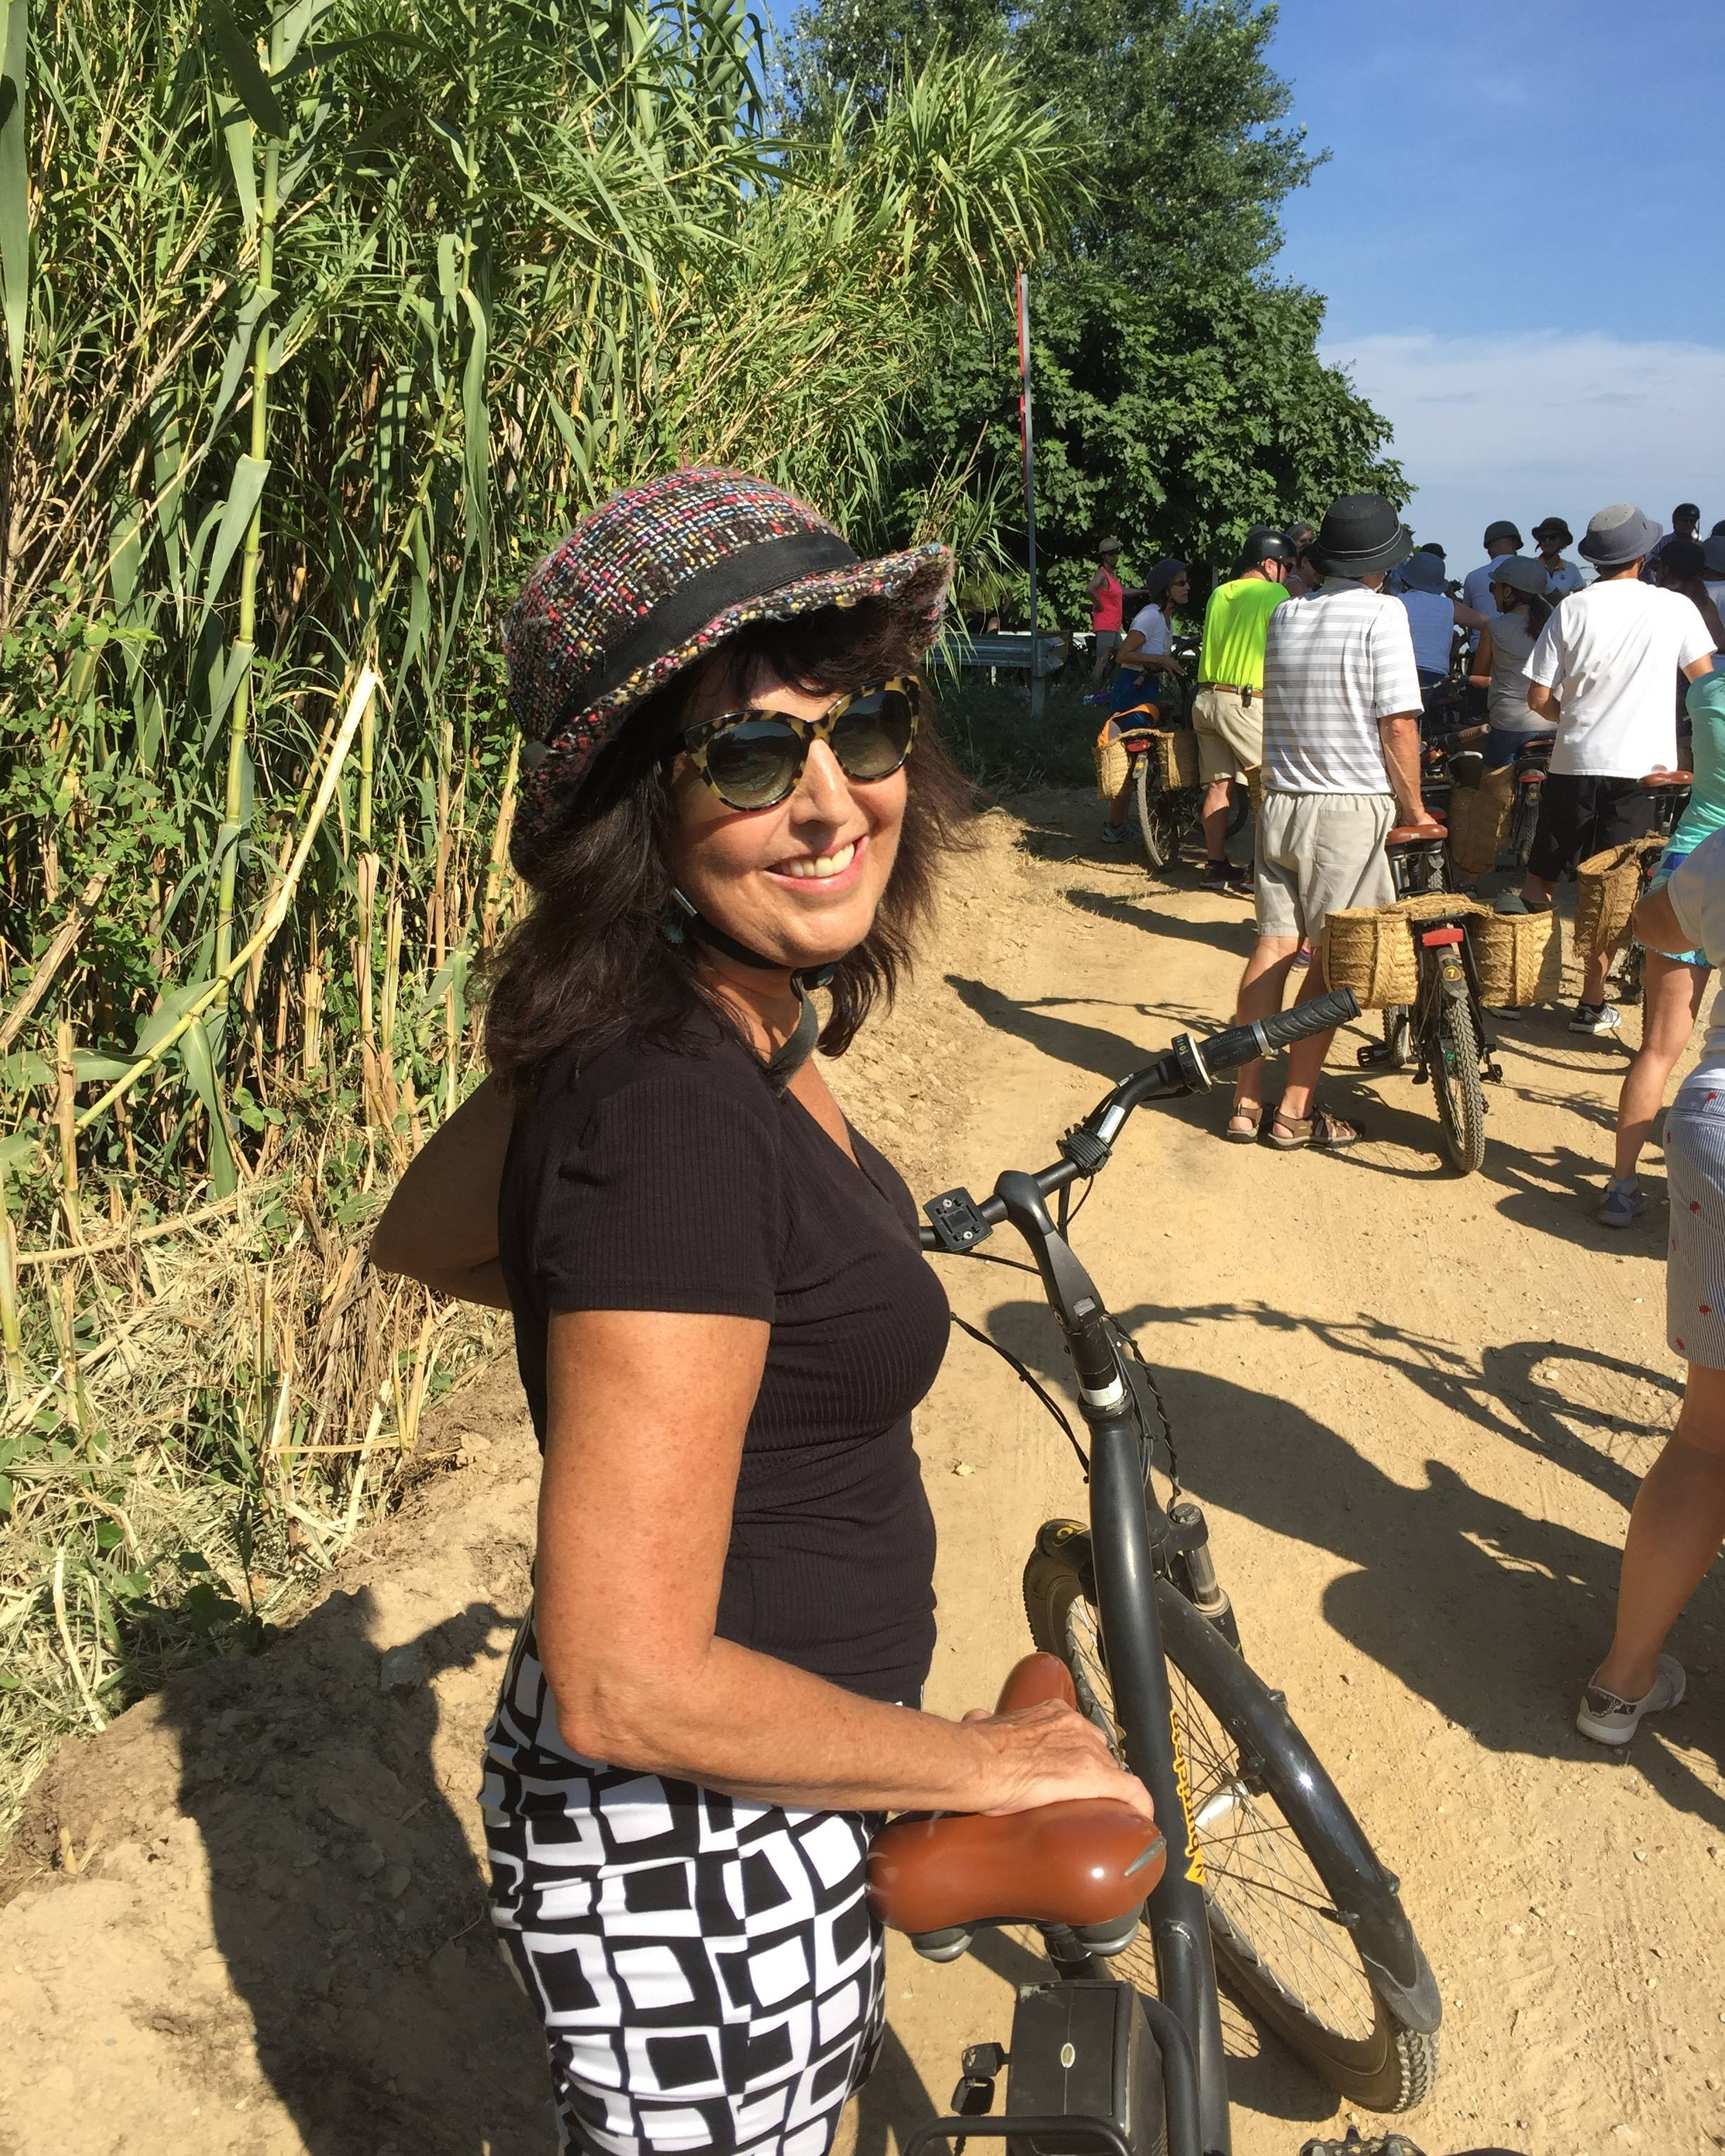 Jeri Donovan, Founder of Well Traveled tickled to be bike riding to Pals, Spain on a fun-filled Seabourn excursion.